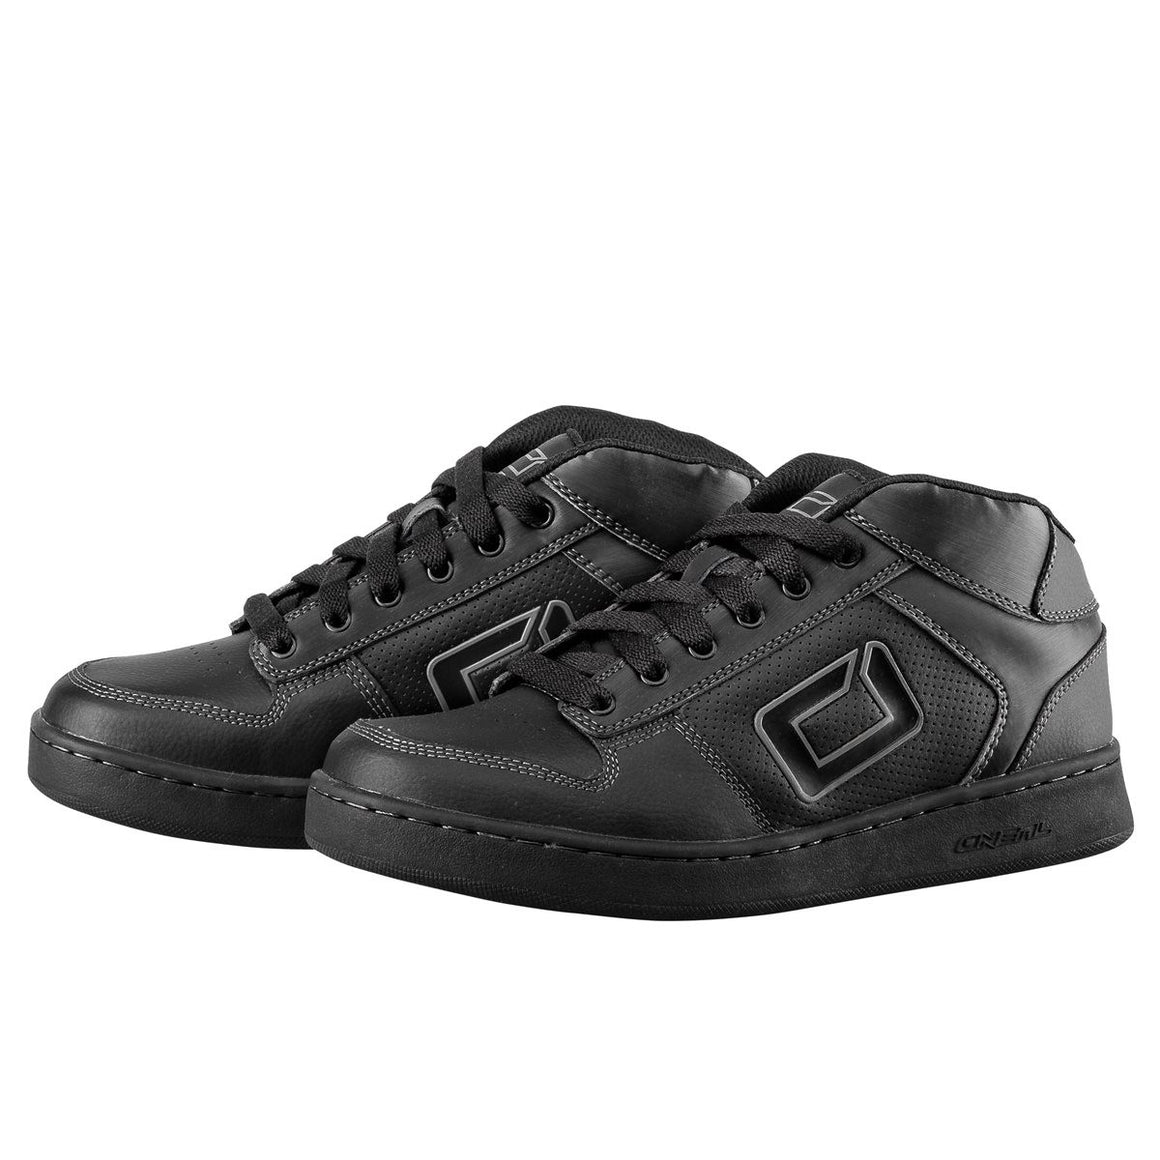 O'Neal Trigger II Unisex Shoes